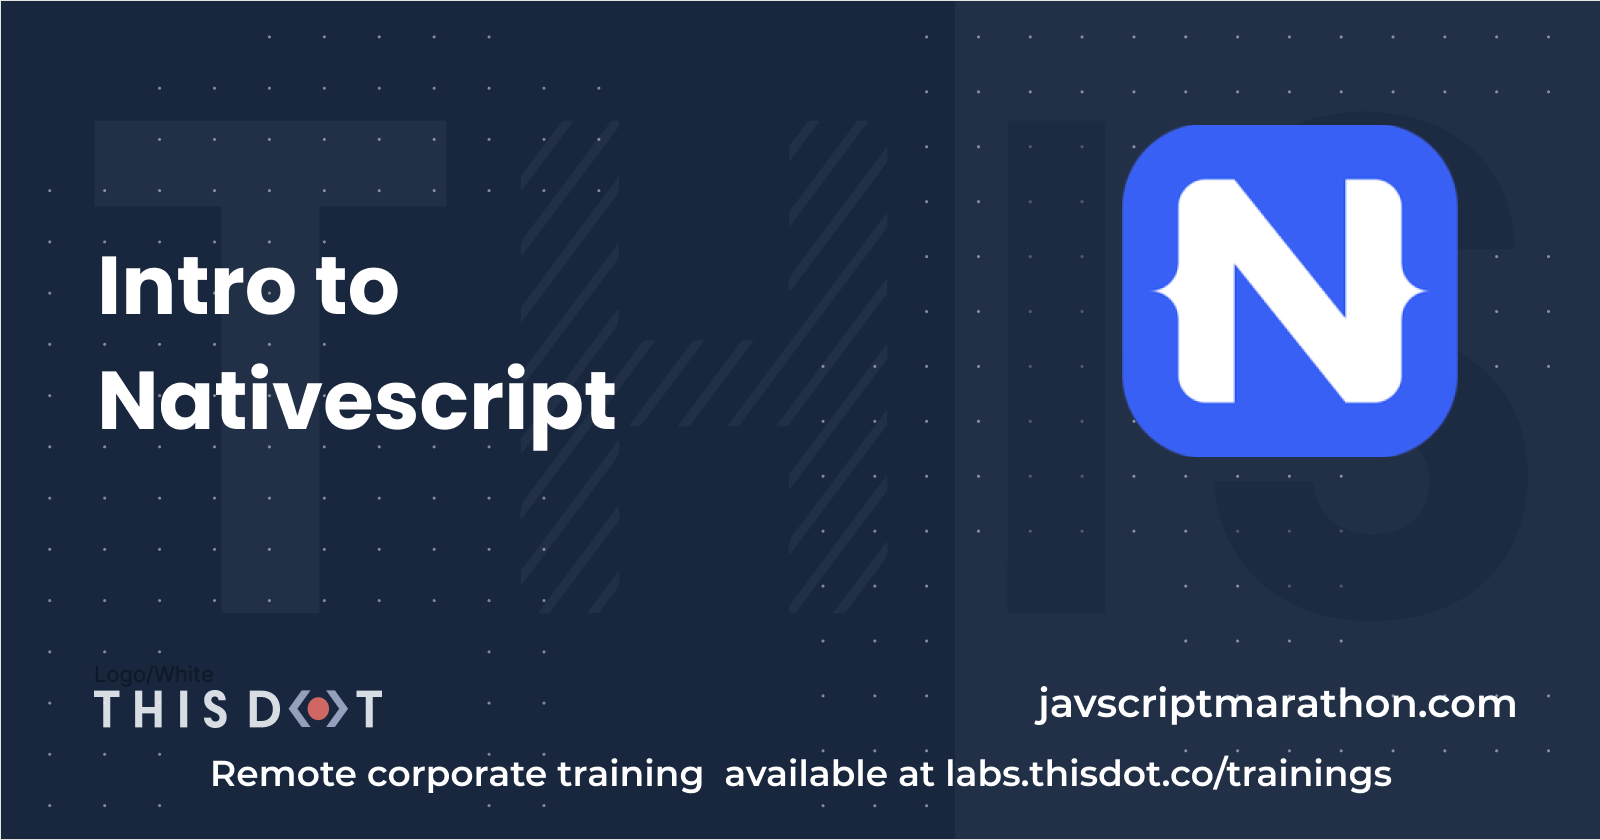 Intro to Nativescript (image)